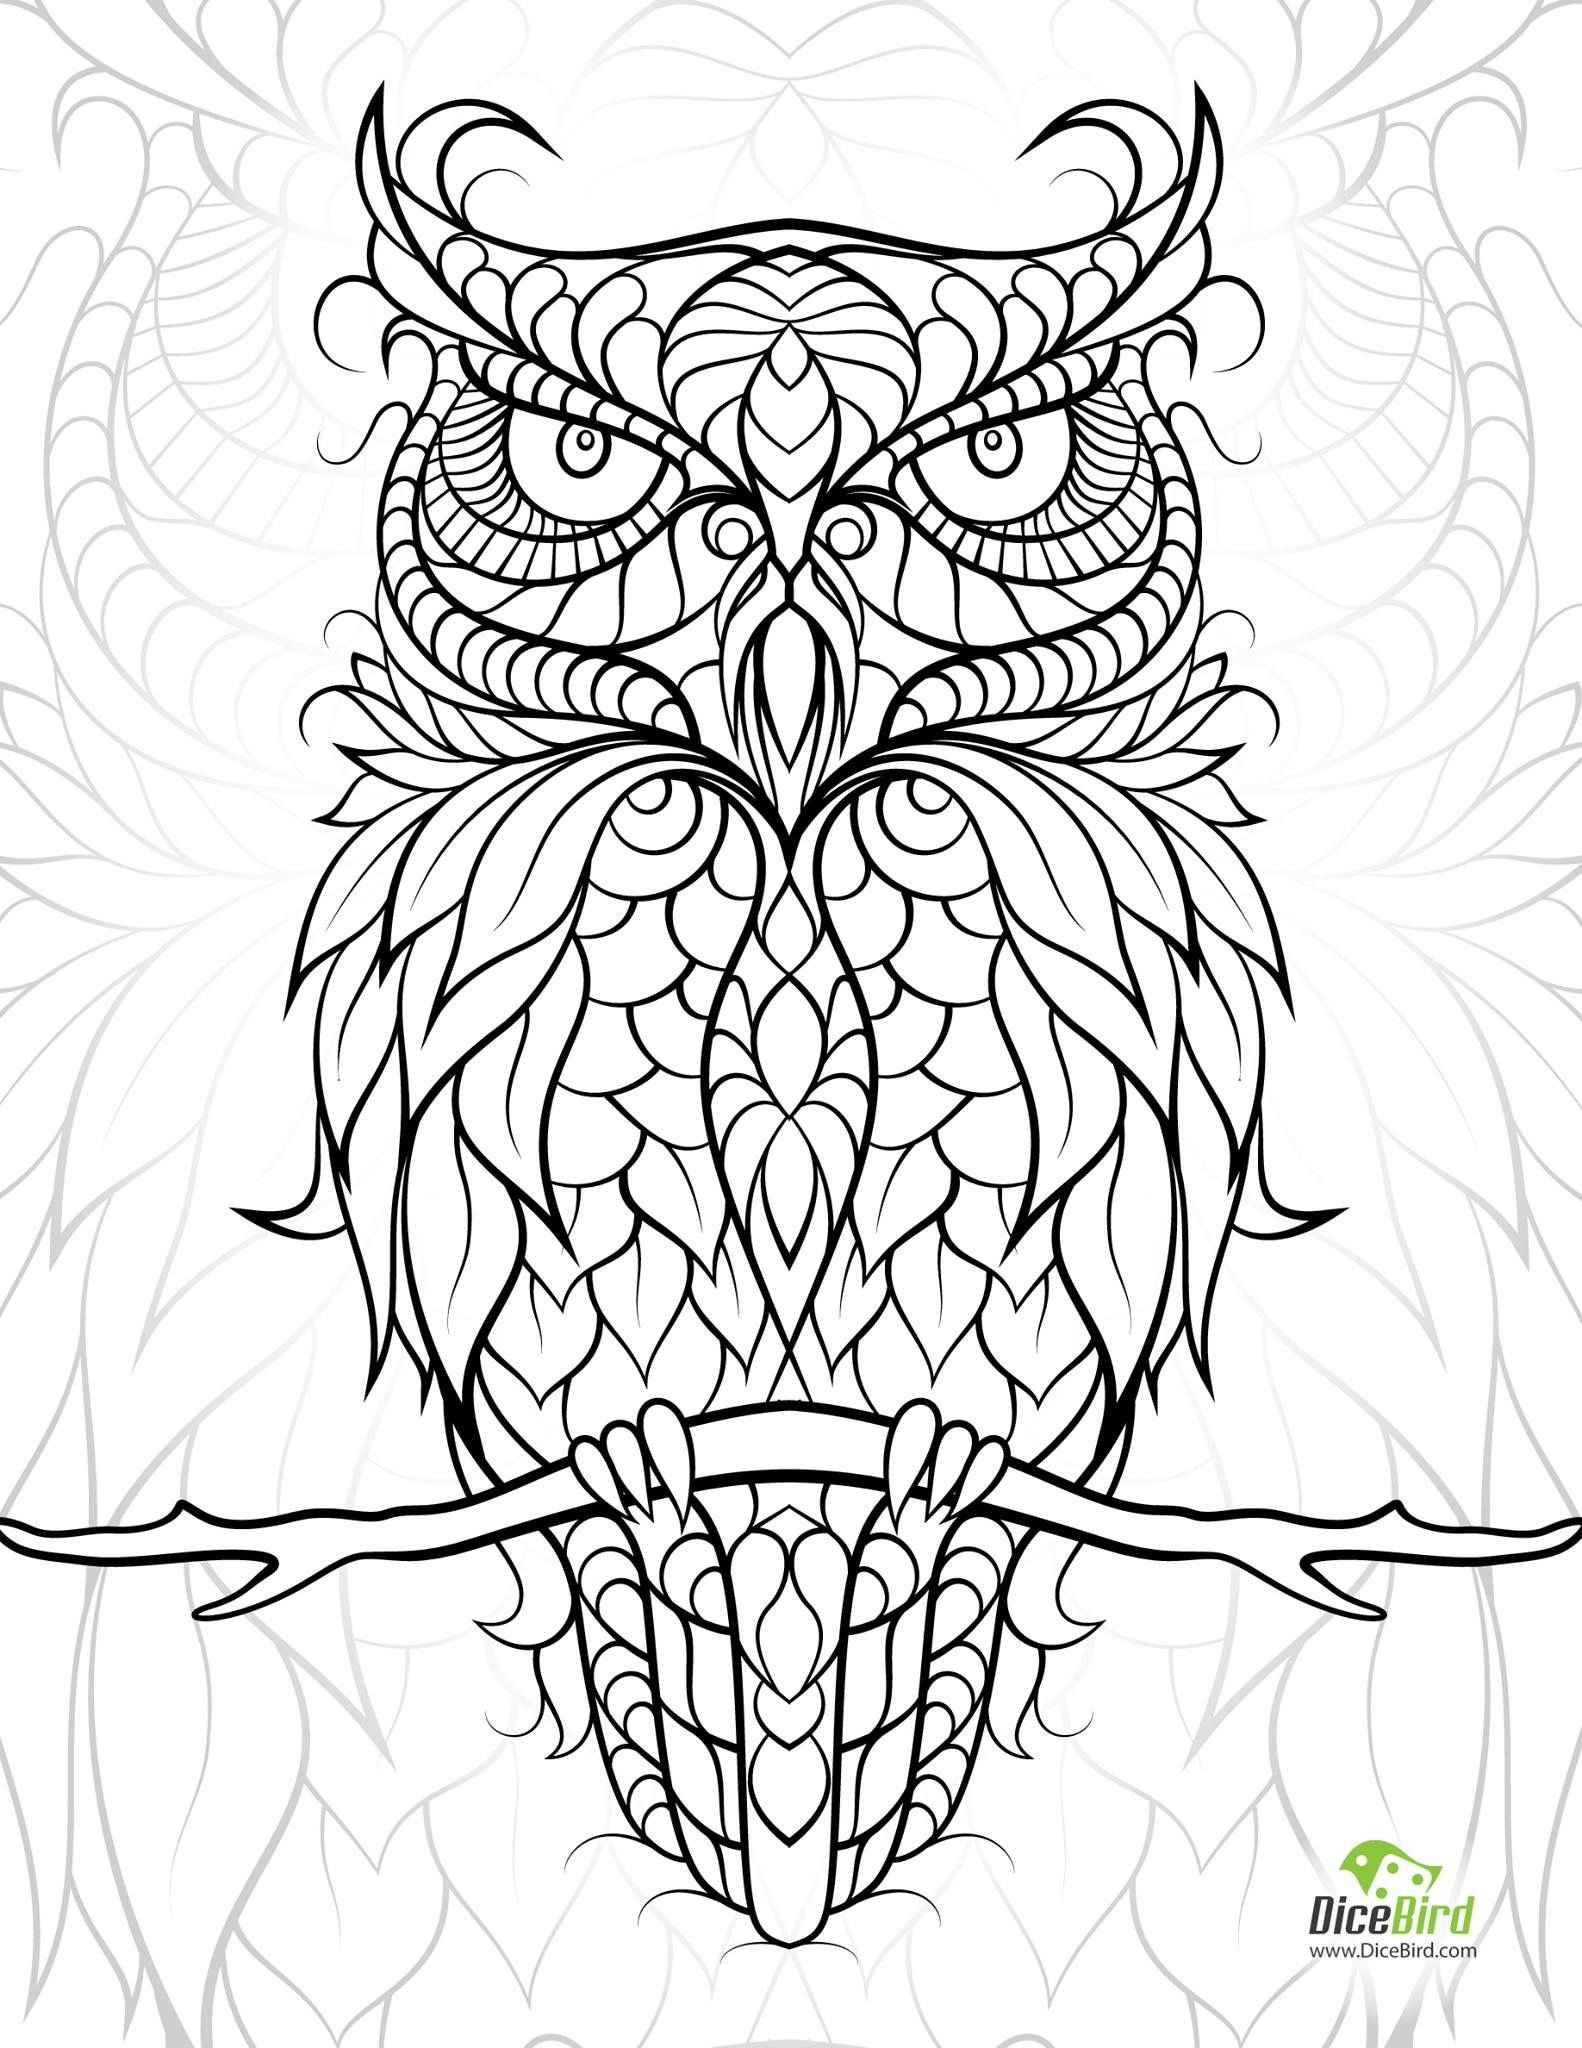 owl colouring page mehr - Printable Owl Coloring Pages For Adults